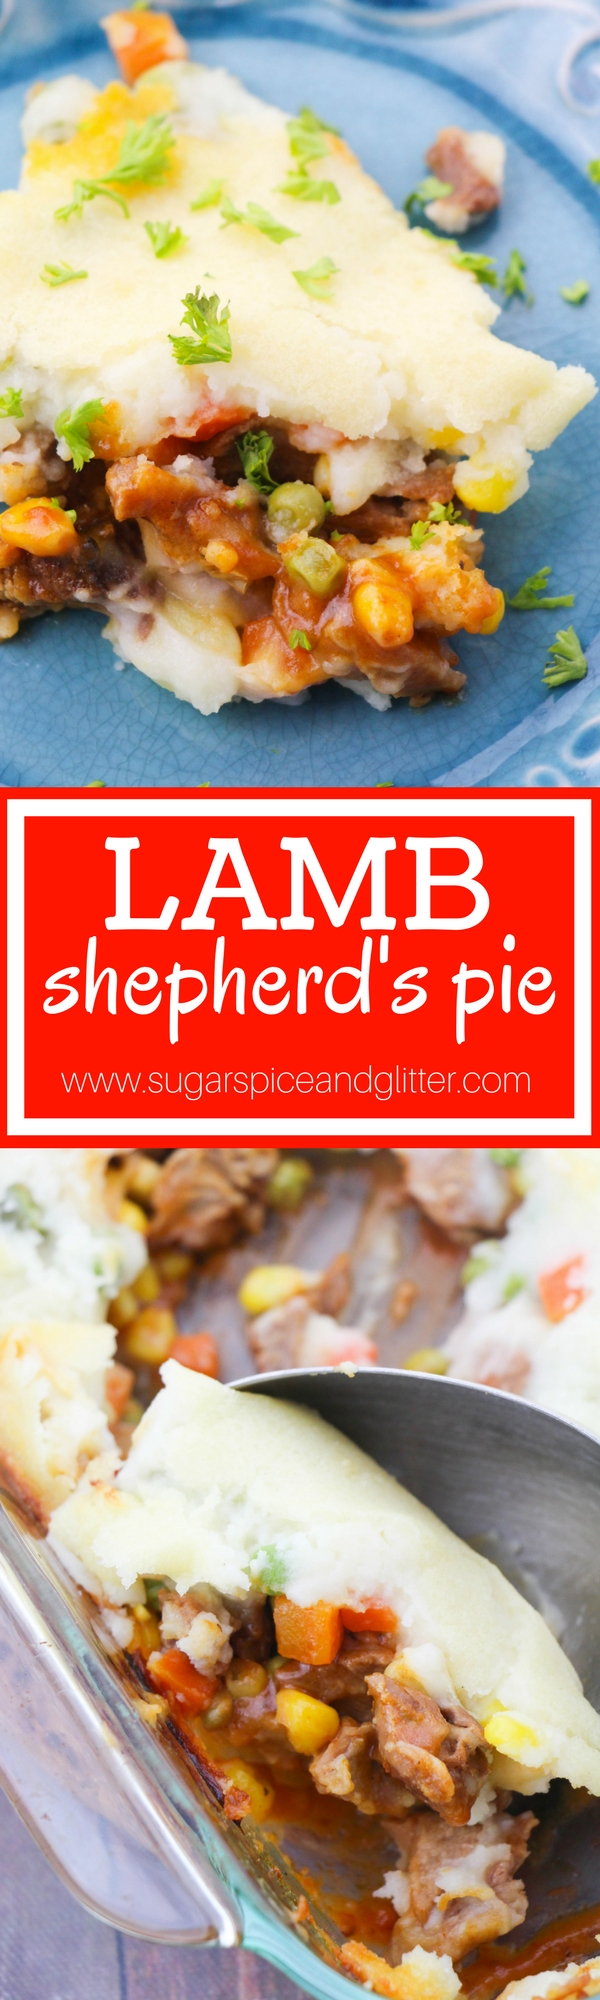 A delicious and authentic Shepherd's Pie made with lamb, the perfect Irish recipe for St Patrick's Day or just a special comfort food recipe